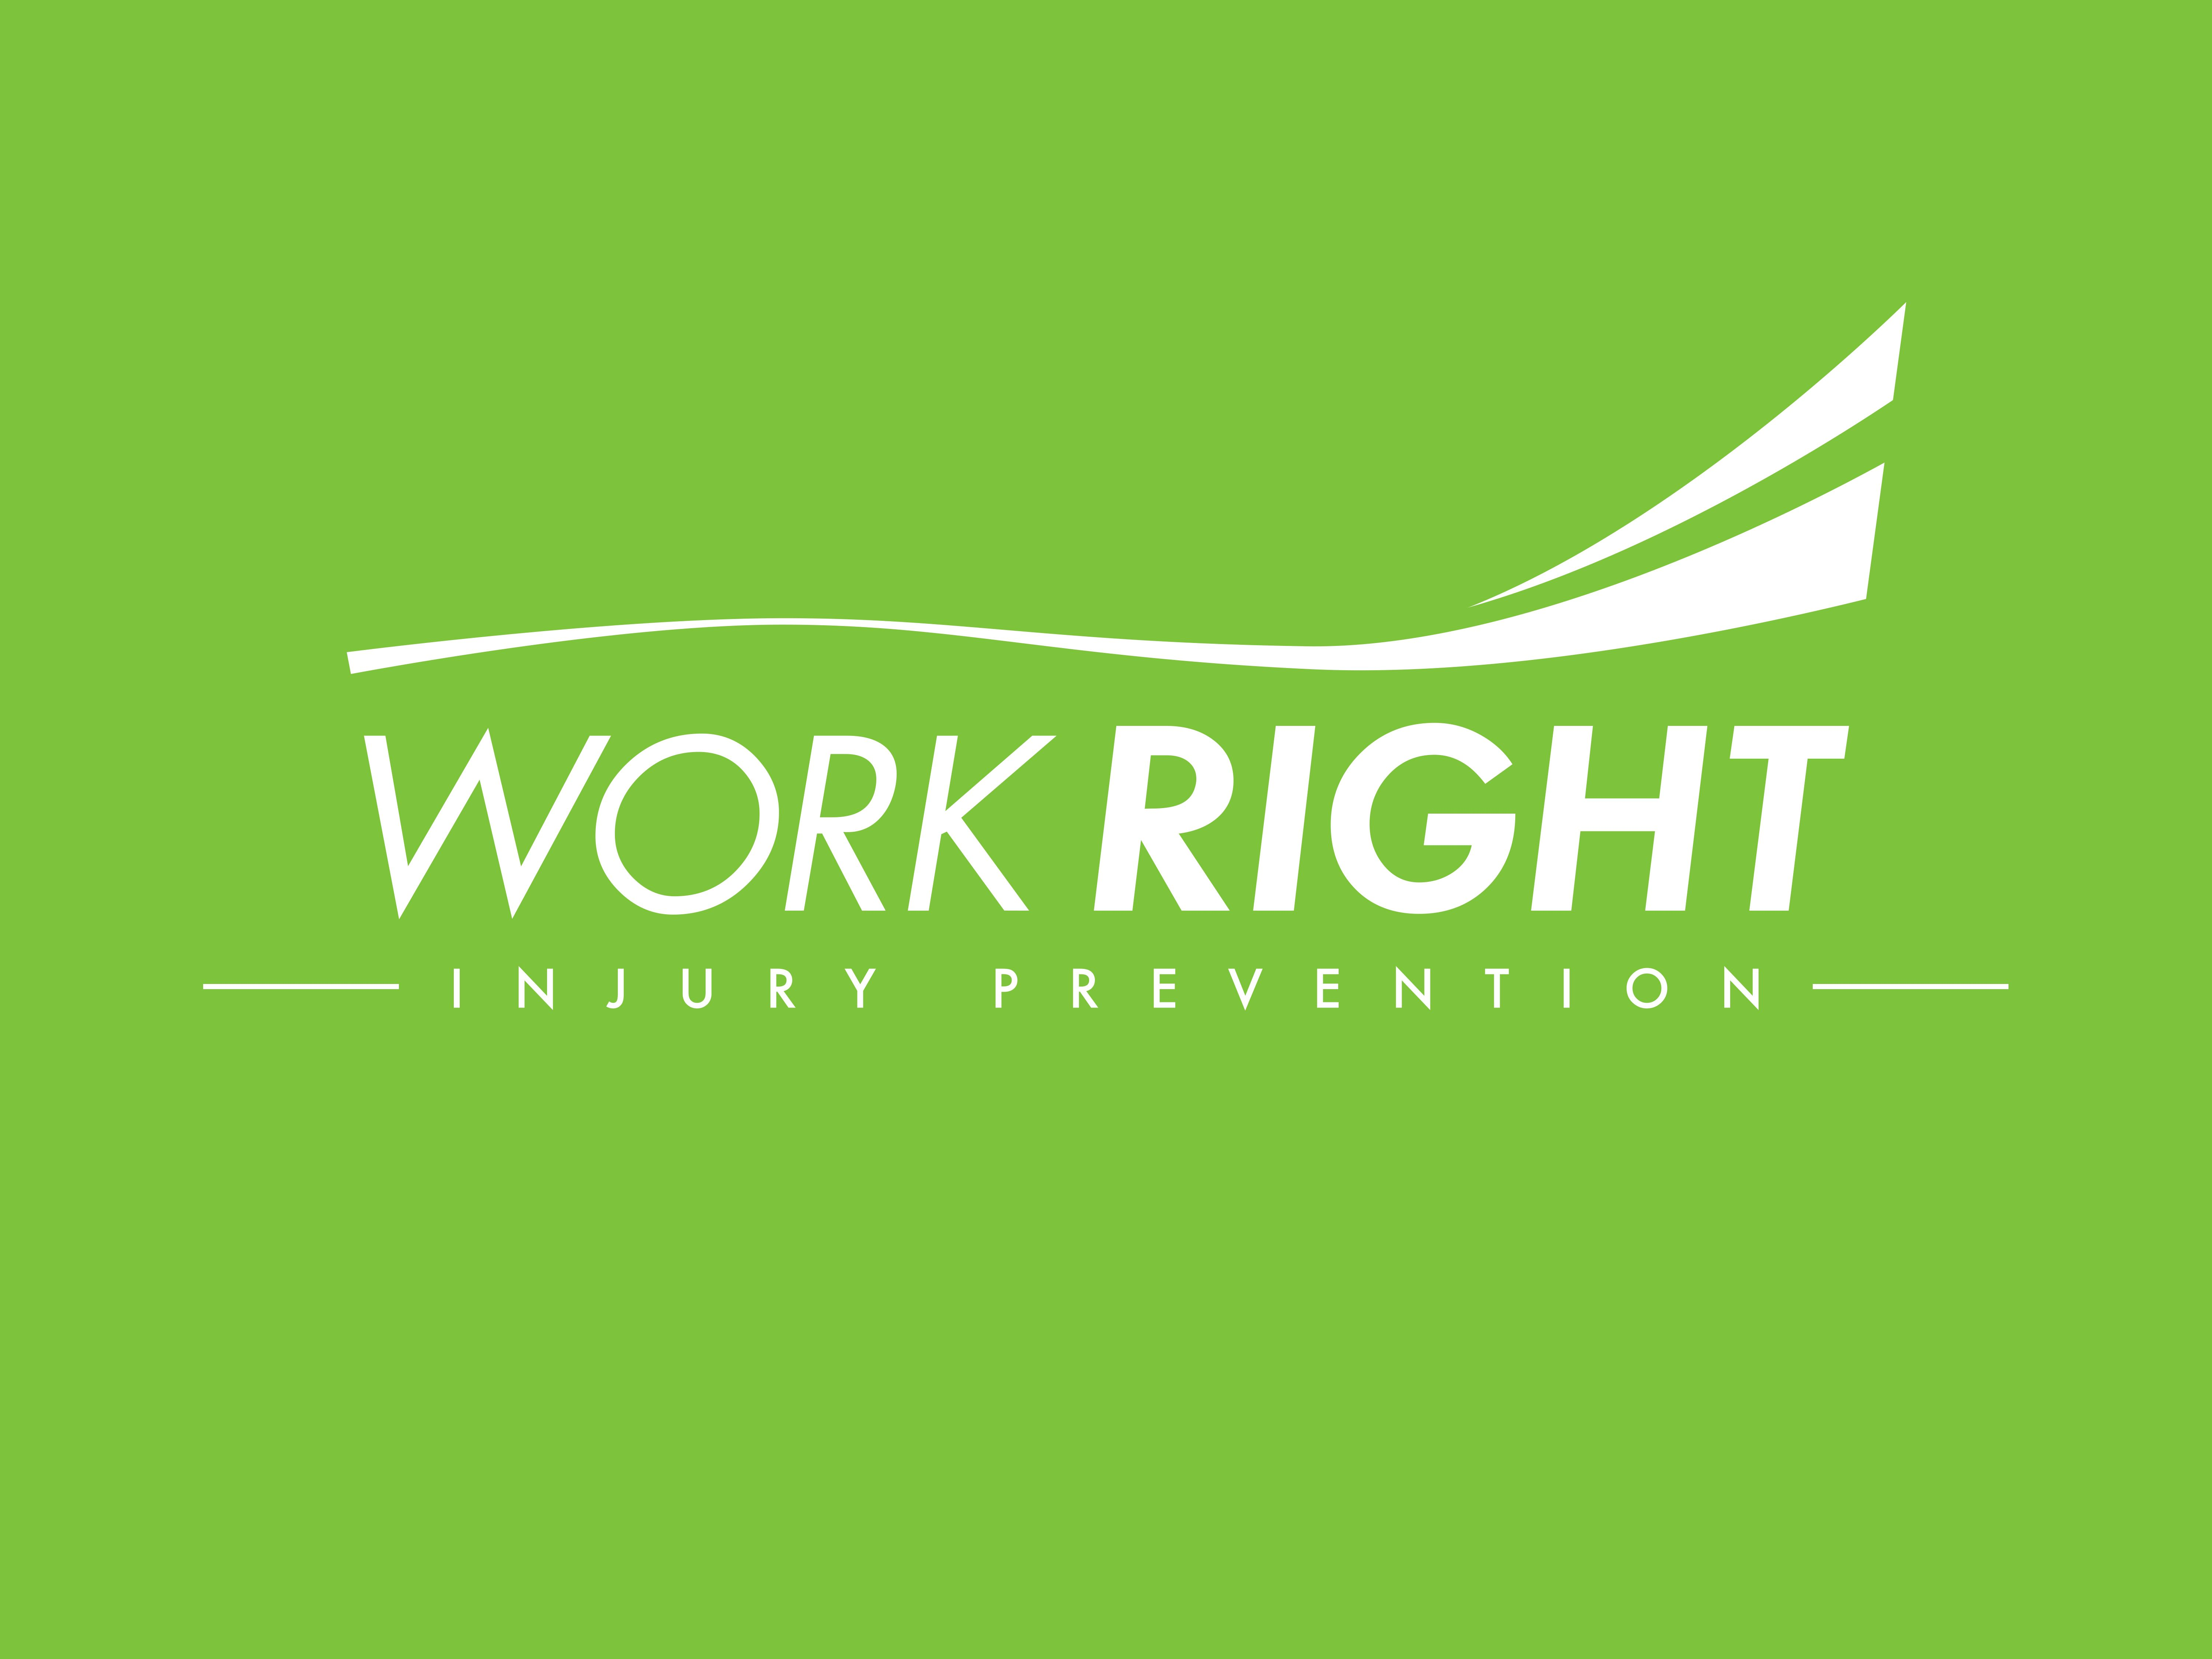 The environment of workplace safety is changing in the